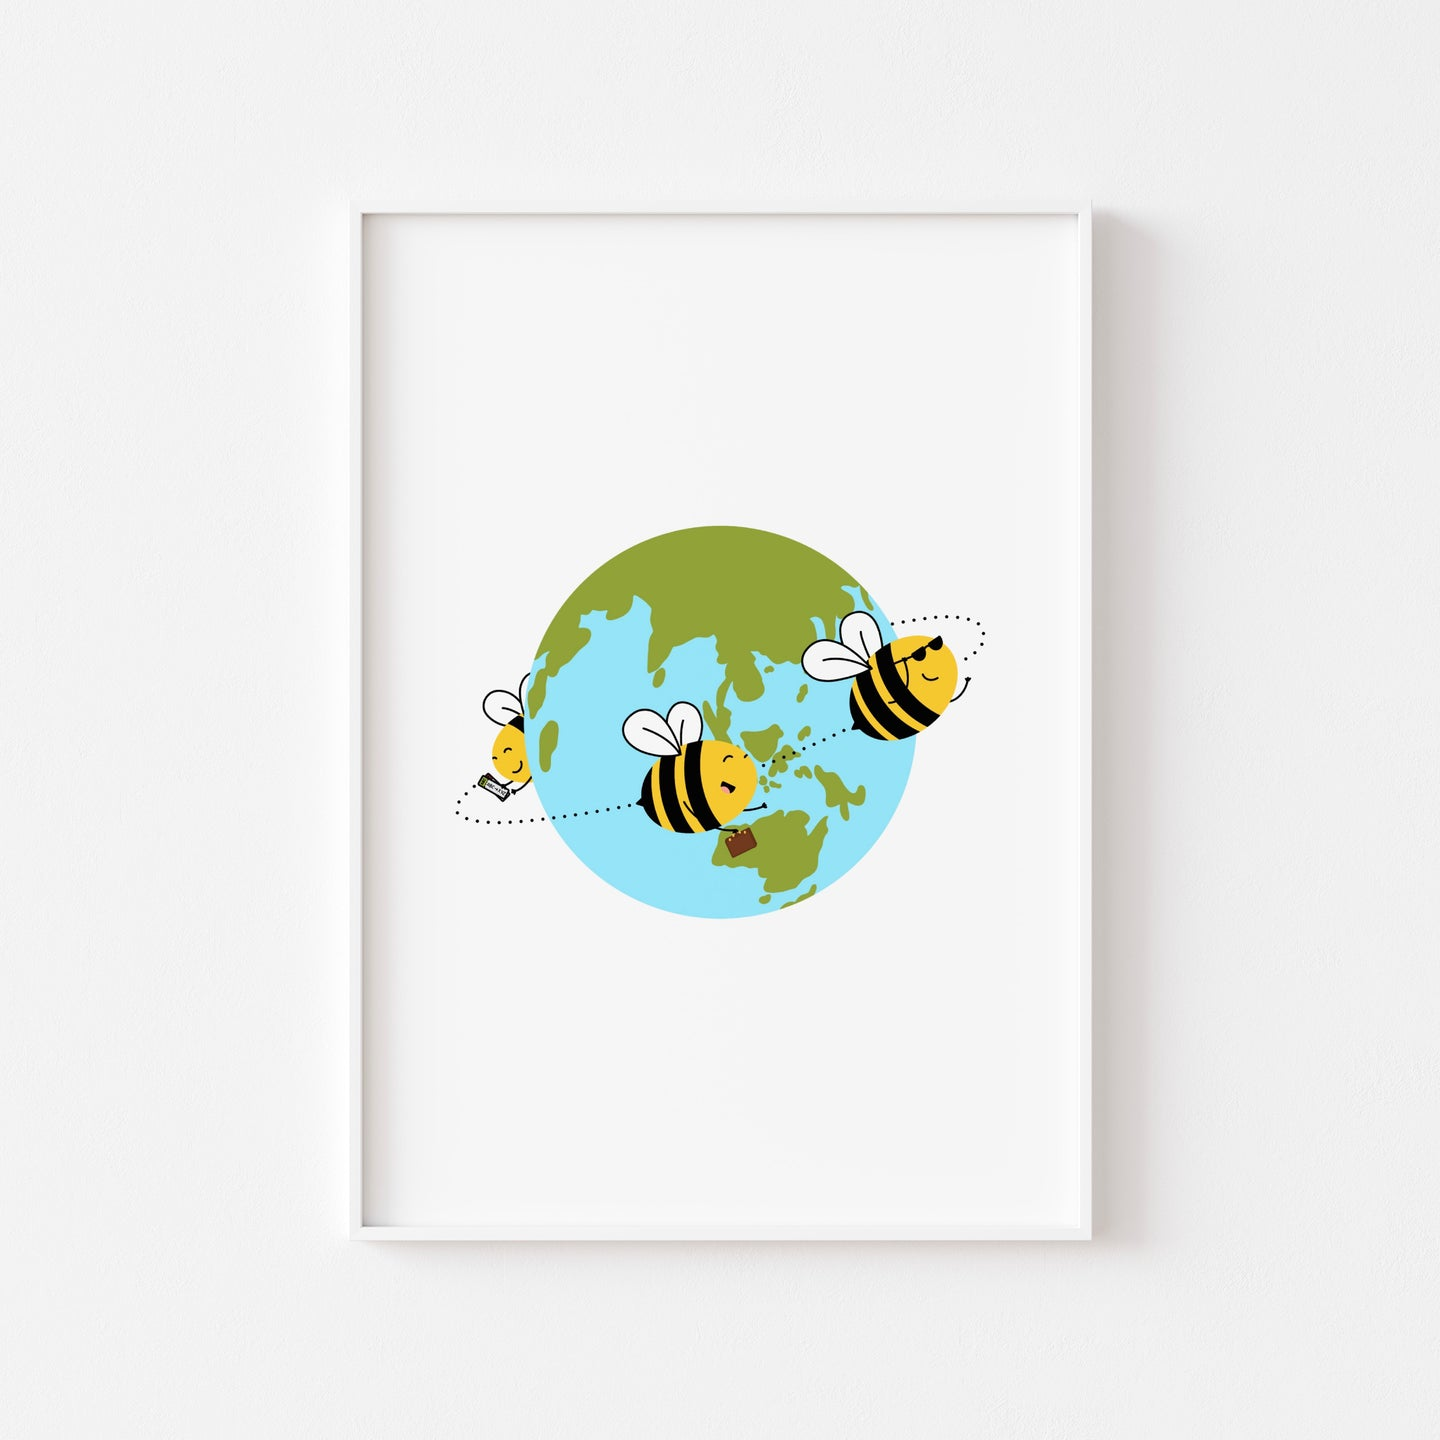 A photograph of our Travelling Bees print on a white wall in a white frame - three bees flying around the world - one holding tickets, one holding a suitcase, one wearing sunglasses, by Lulibell Studio.